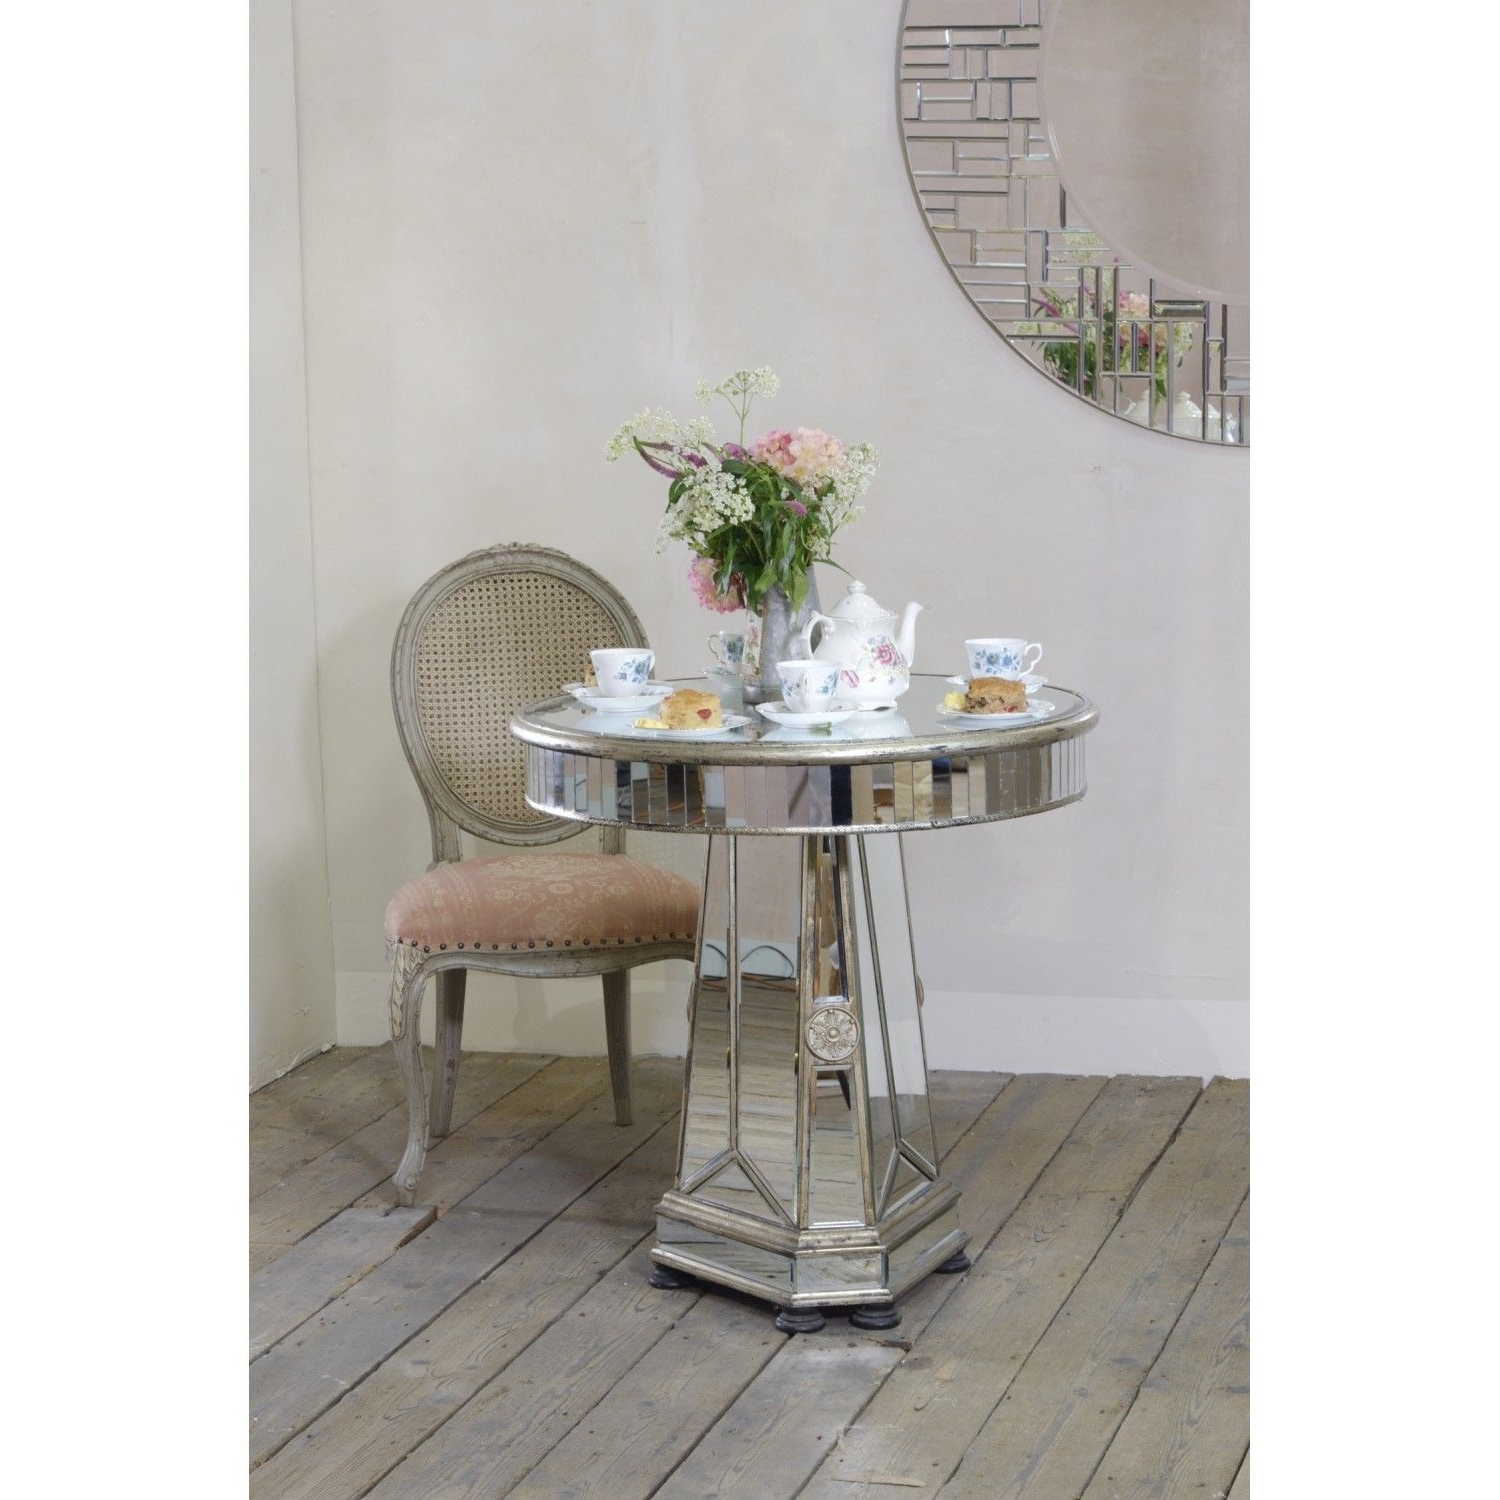 Mirrored Venetian Small Round Dining Table – Silver In Most Up To Date Mirrored Dining Tables (View 14 of 25)